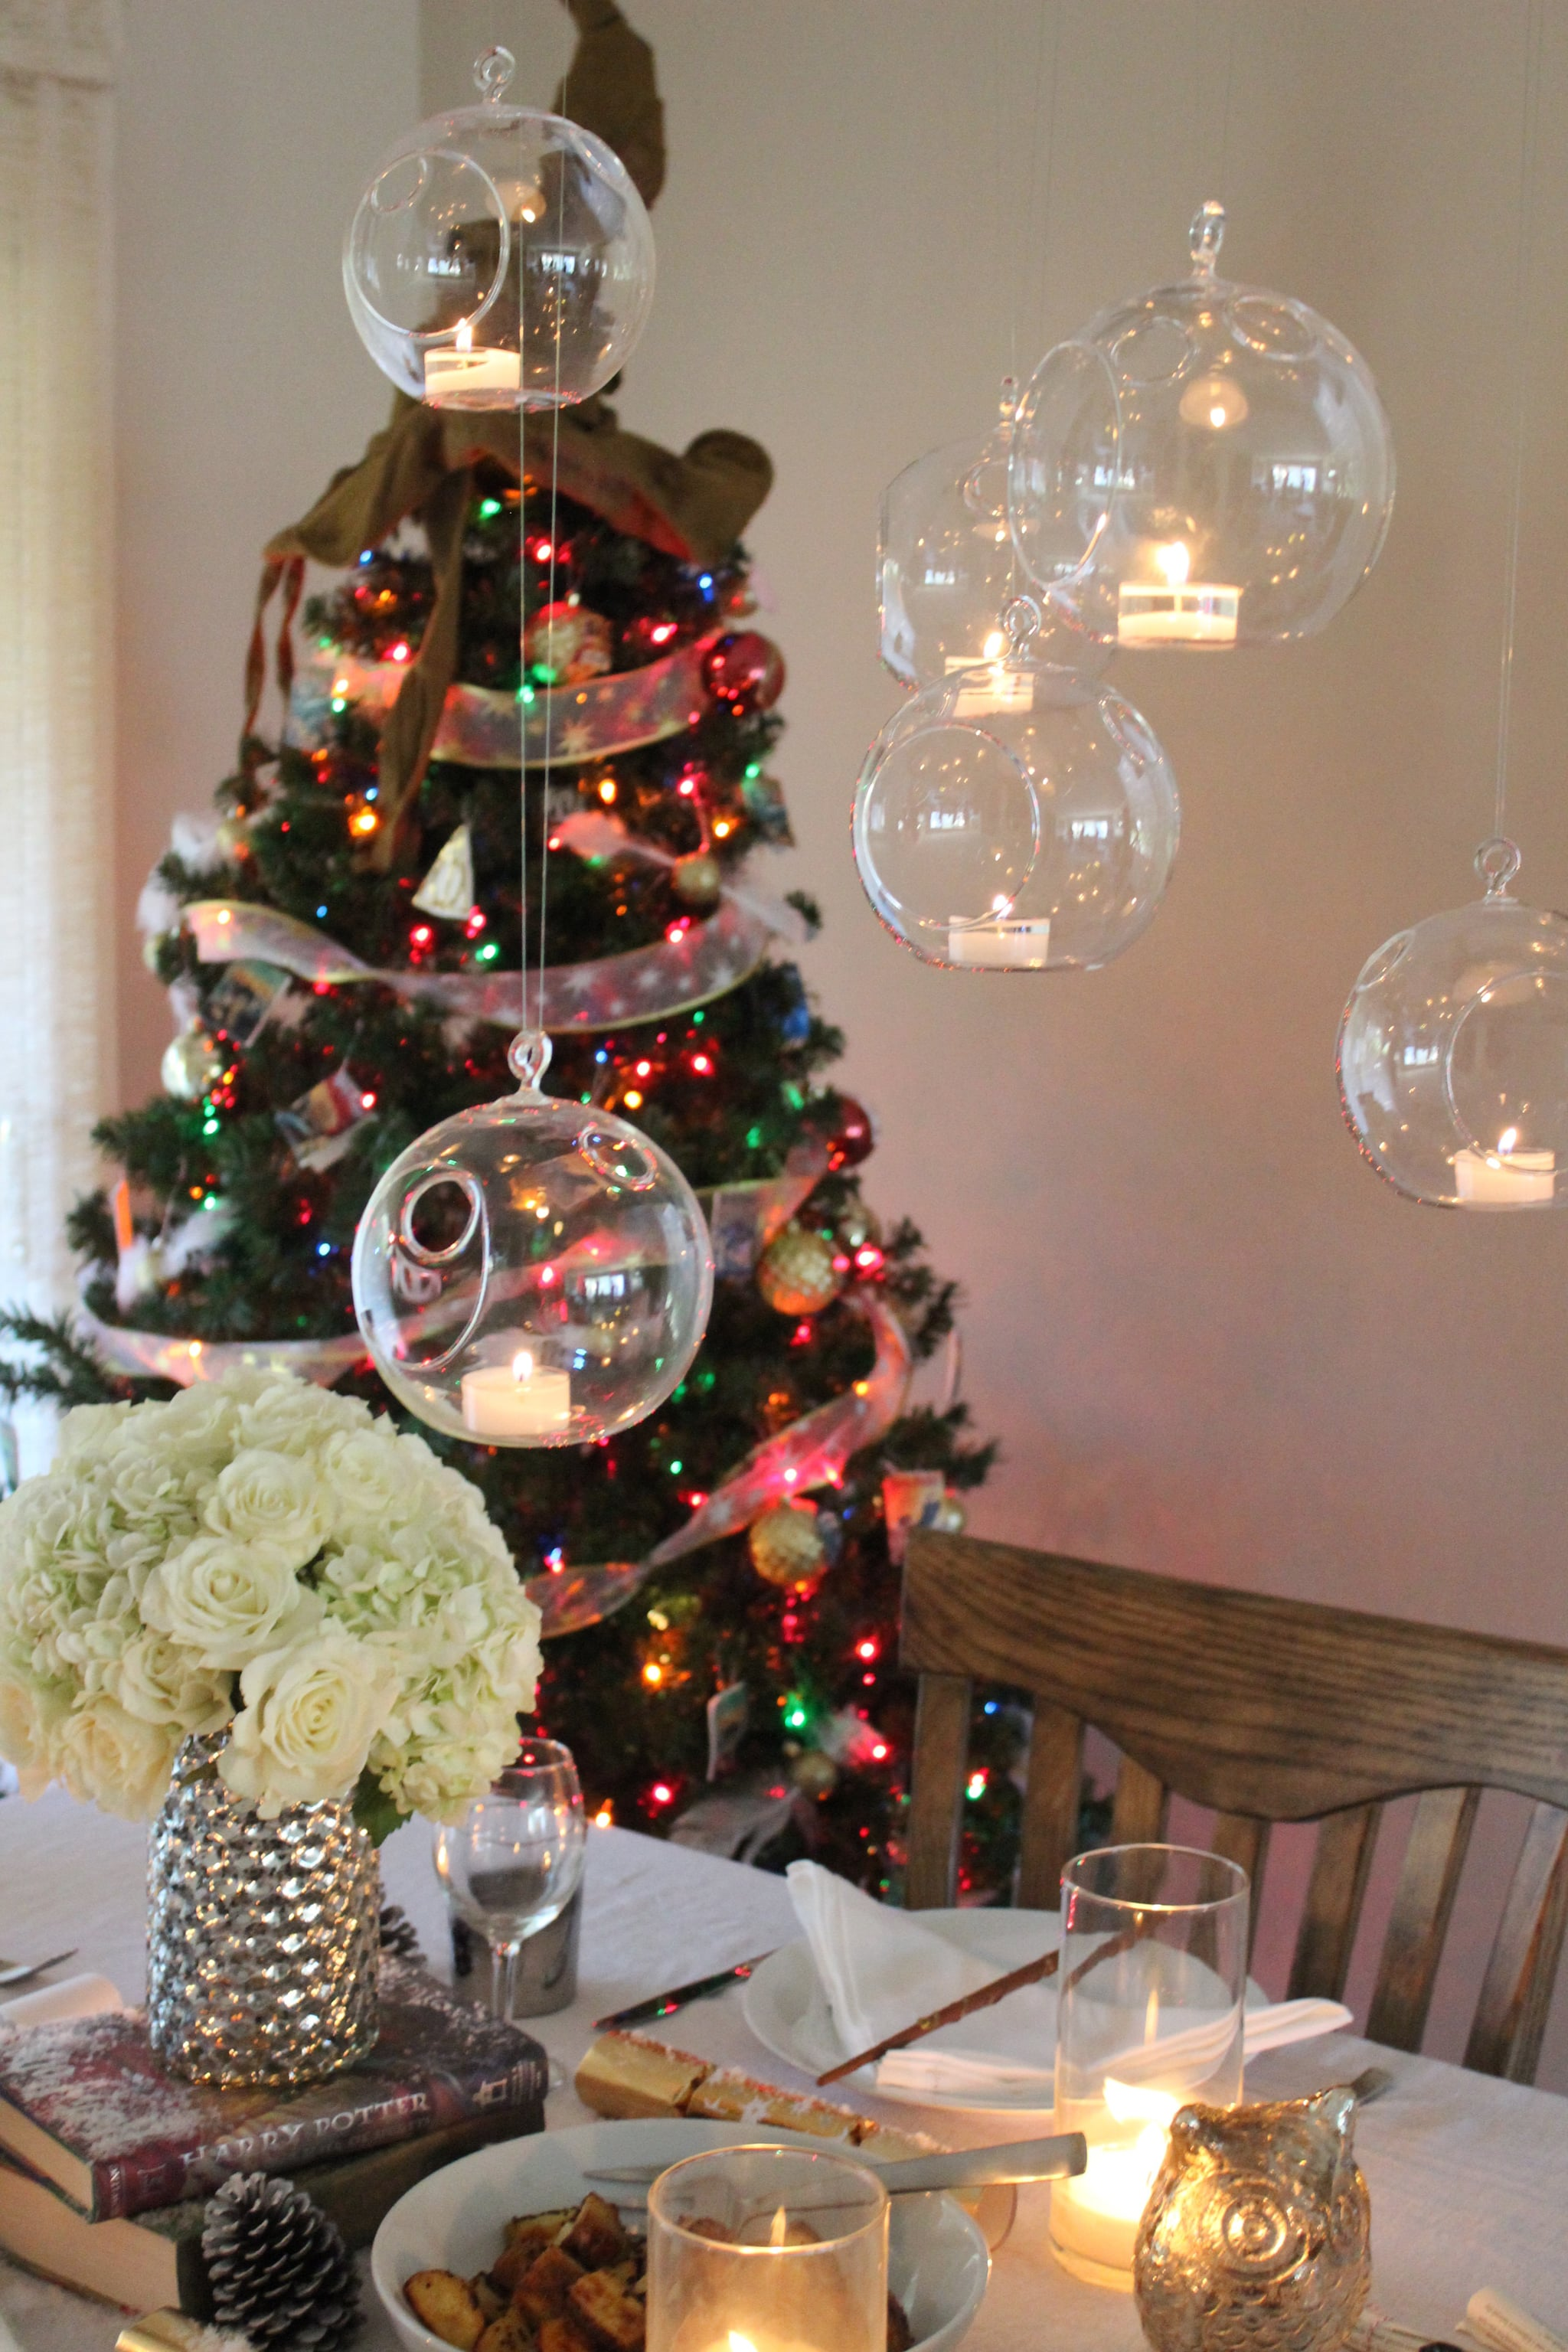 Christmas Floating Candles.Hang Floating Candles That You Ll Never Want To Take Down